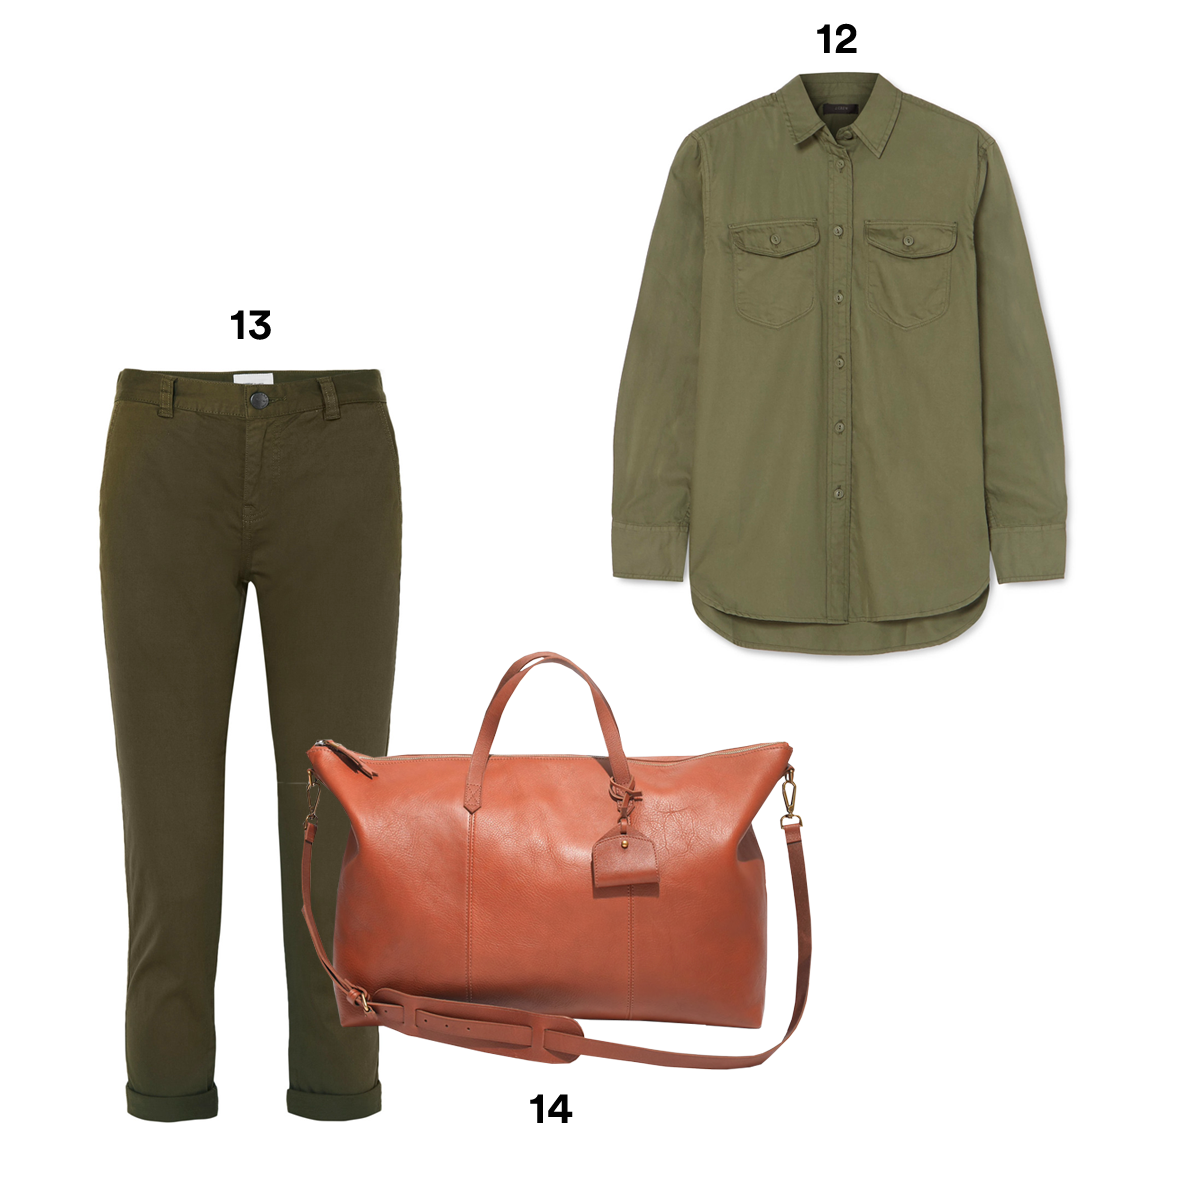 12.) J.CREW Oversized Cotton-Twill Shirt. 13.) CURRENT/ELLIOTT The Confidant Cotton-Blend Twill Straight-Leg Pants, available at Neiman Marcus. 14.) MADEWELL The Transport Weekender.